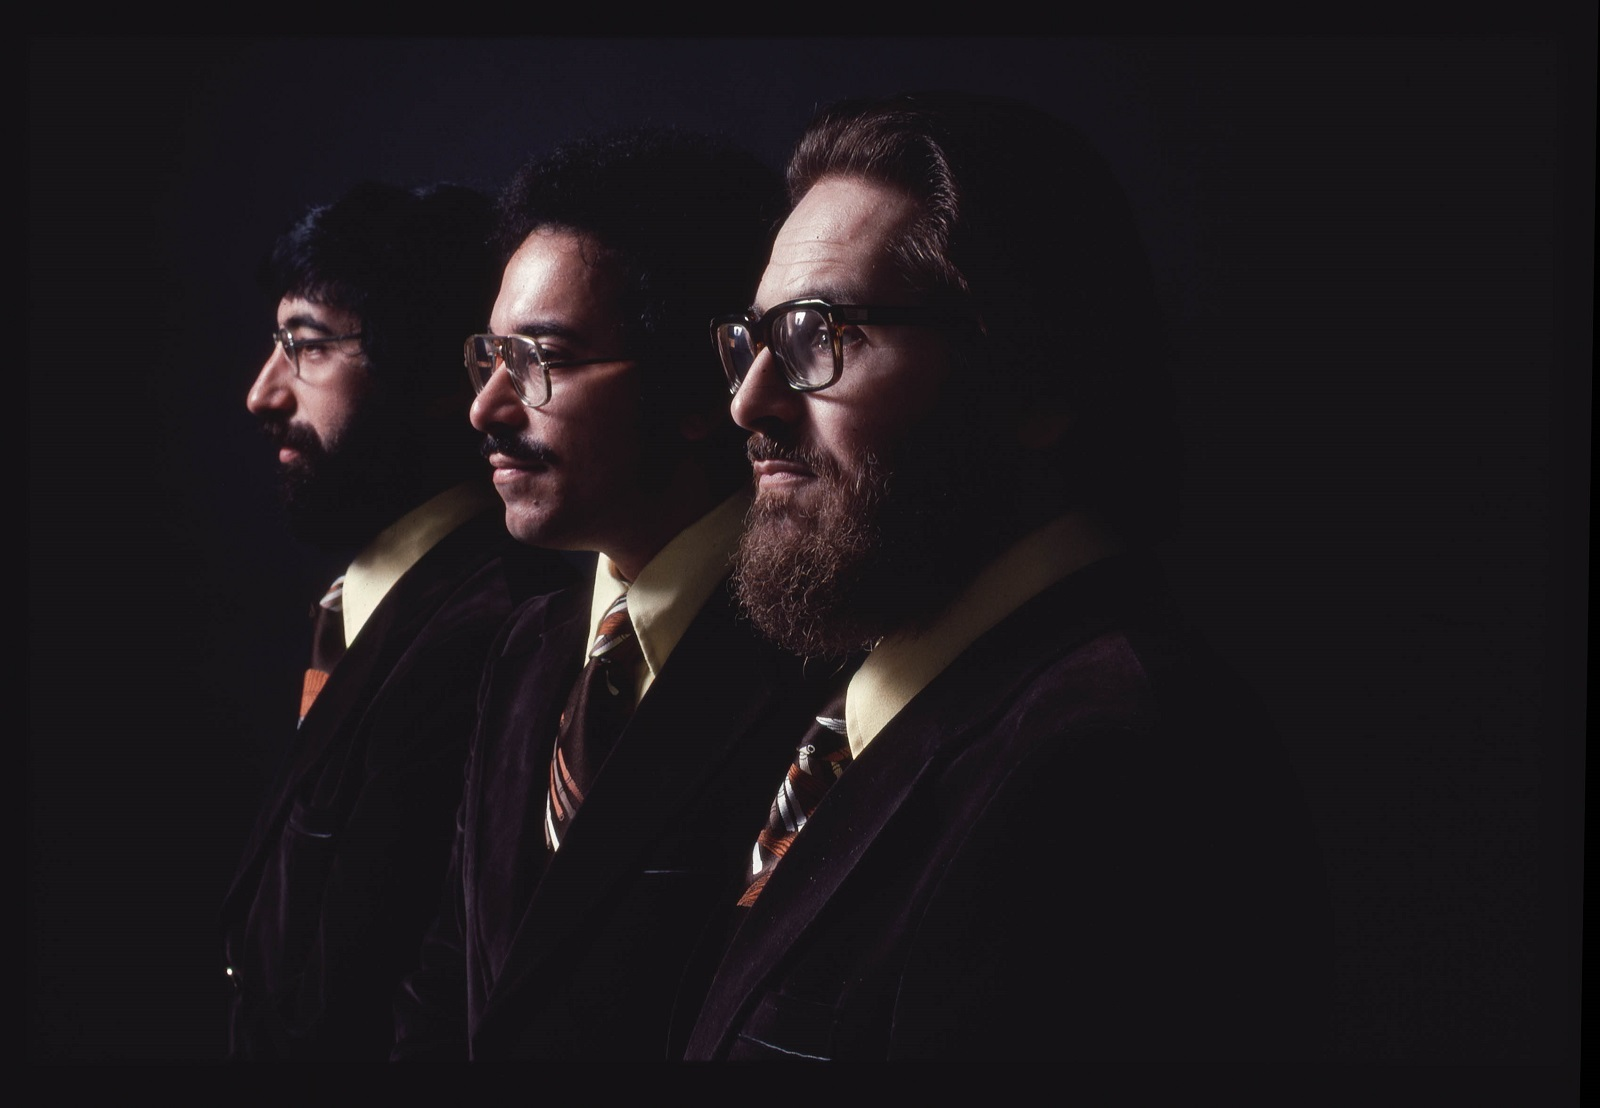 Left to right, Eliot Zigmund, Eddie Gomez, Bill Evans (Phil Bray)